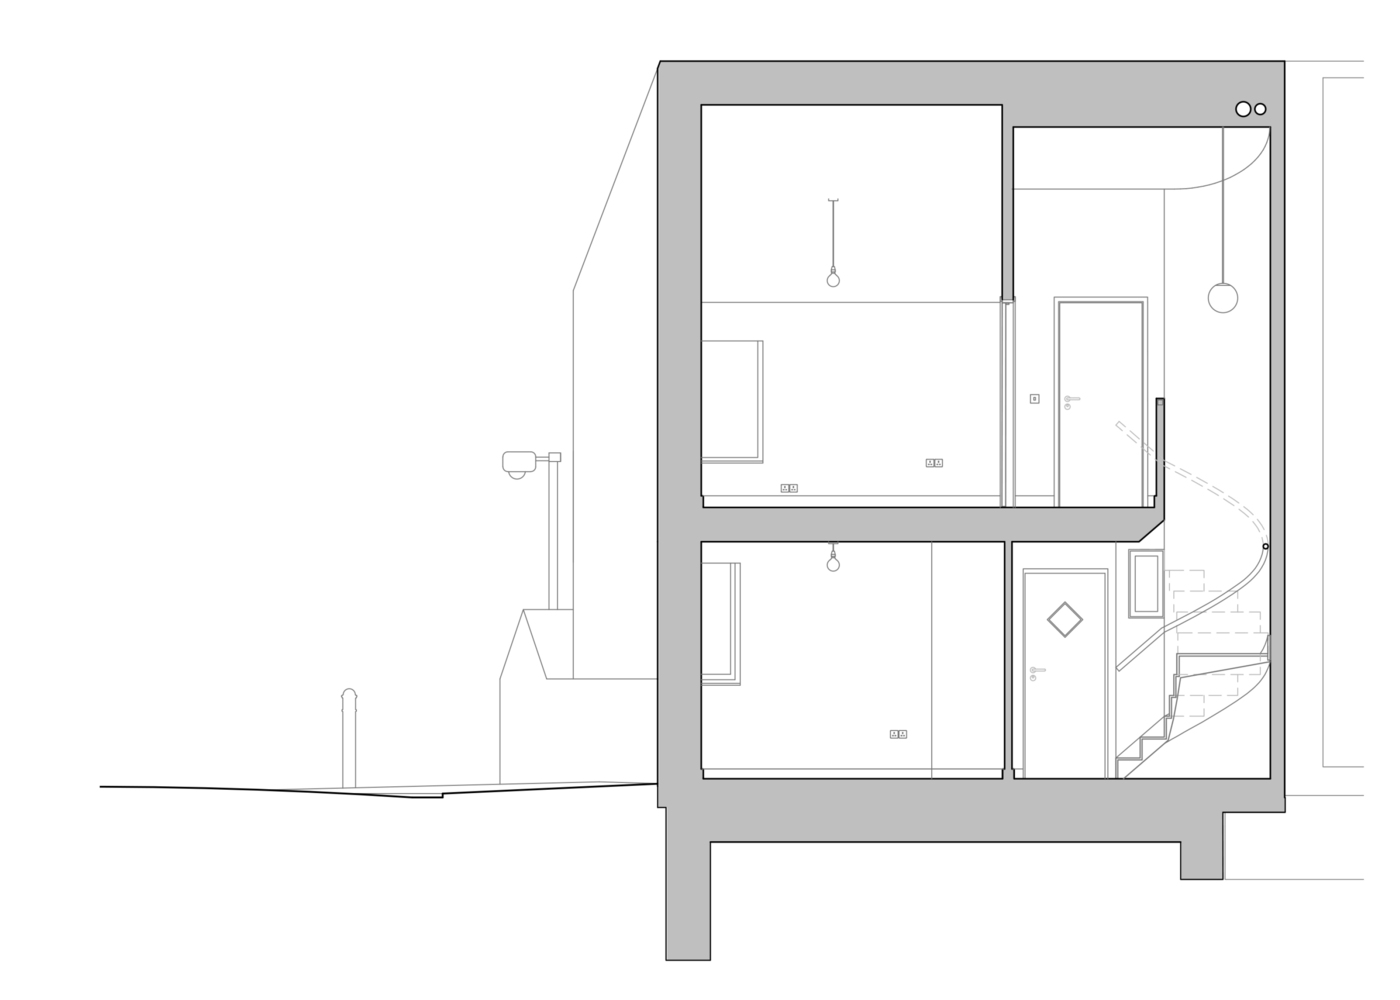 small resolution of salmen house bedroom and stair section scale 1 to 50 at a3